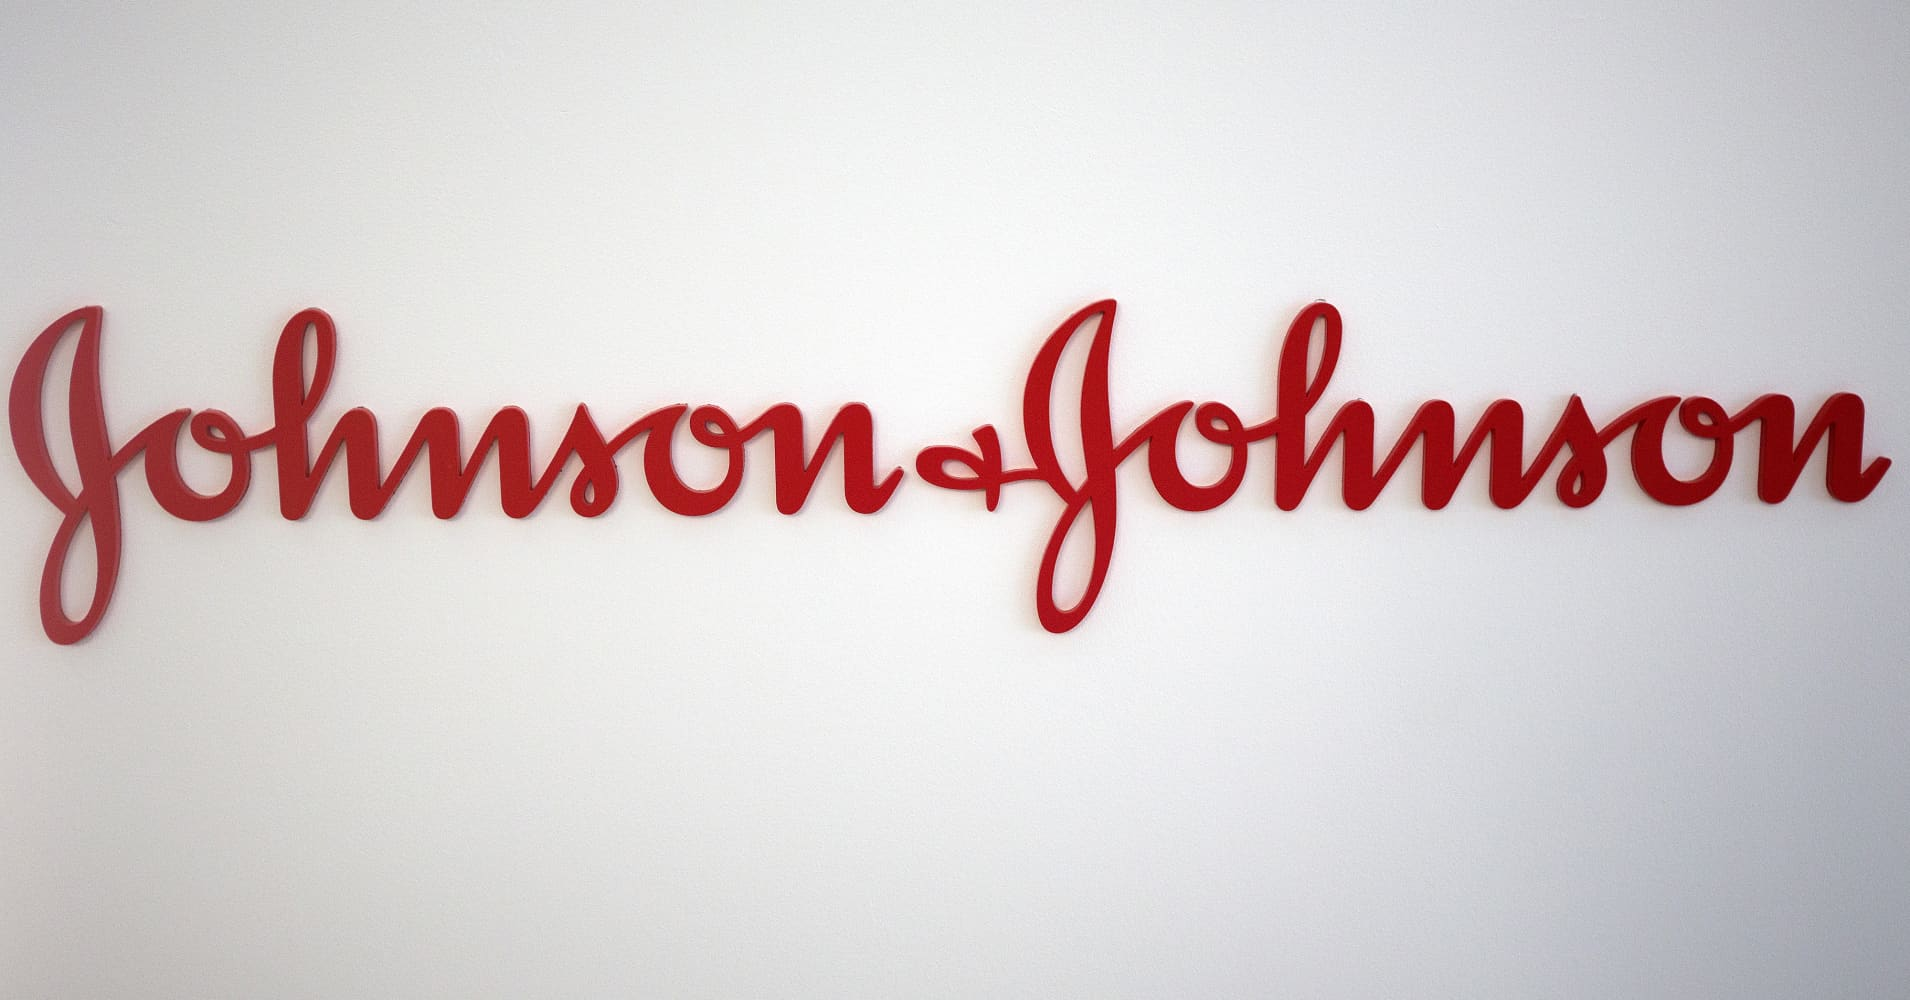 FDA approves Johnson & Johnson's ketamine-like nasal spray for depression